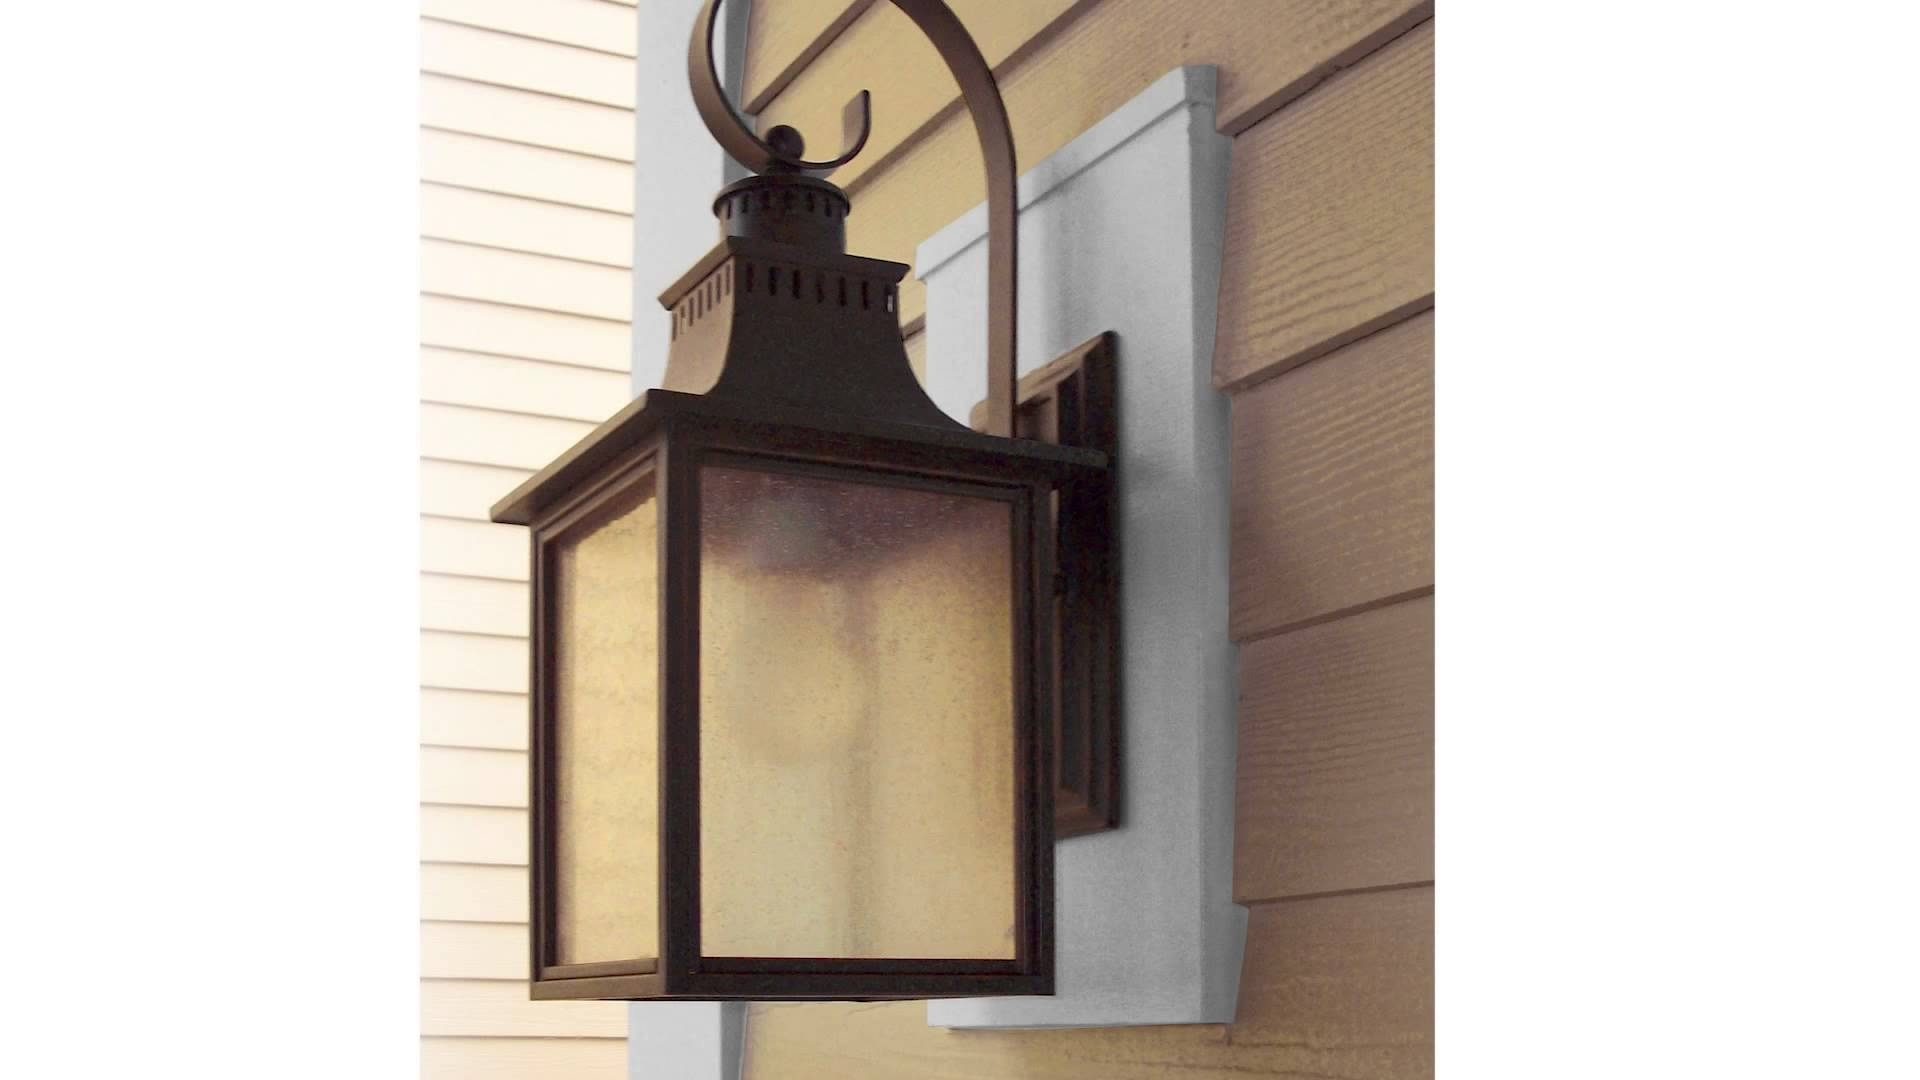 Vinyl Outdoor Wall Lighting Within Most Current Fireplace : Sturdimount Fiber Cement Mounting Blocks Outdoor Light (View 6 of 20)